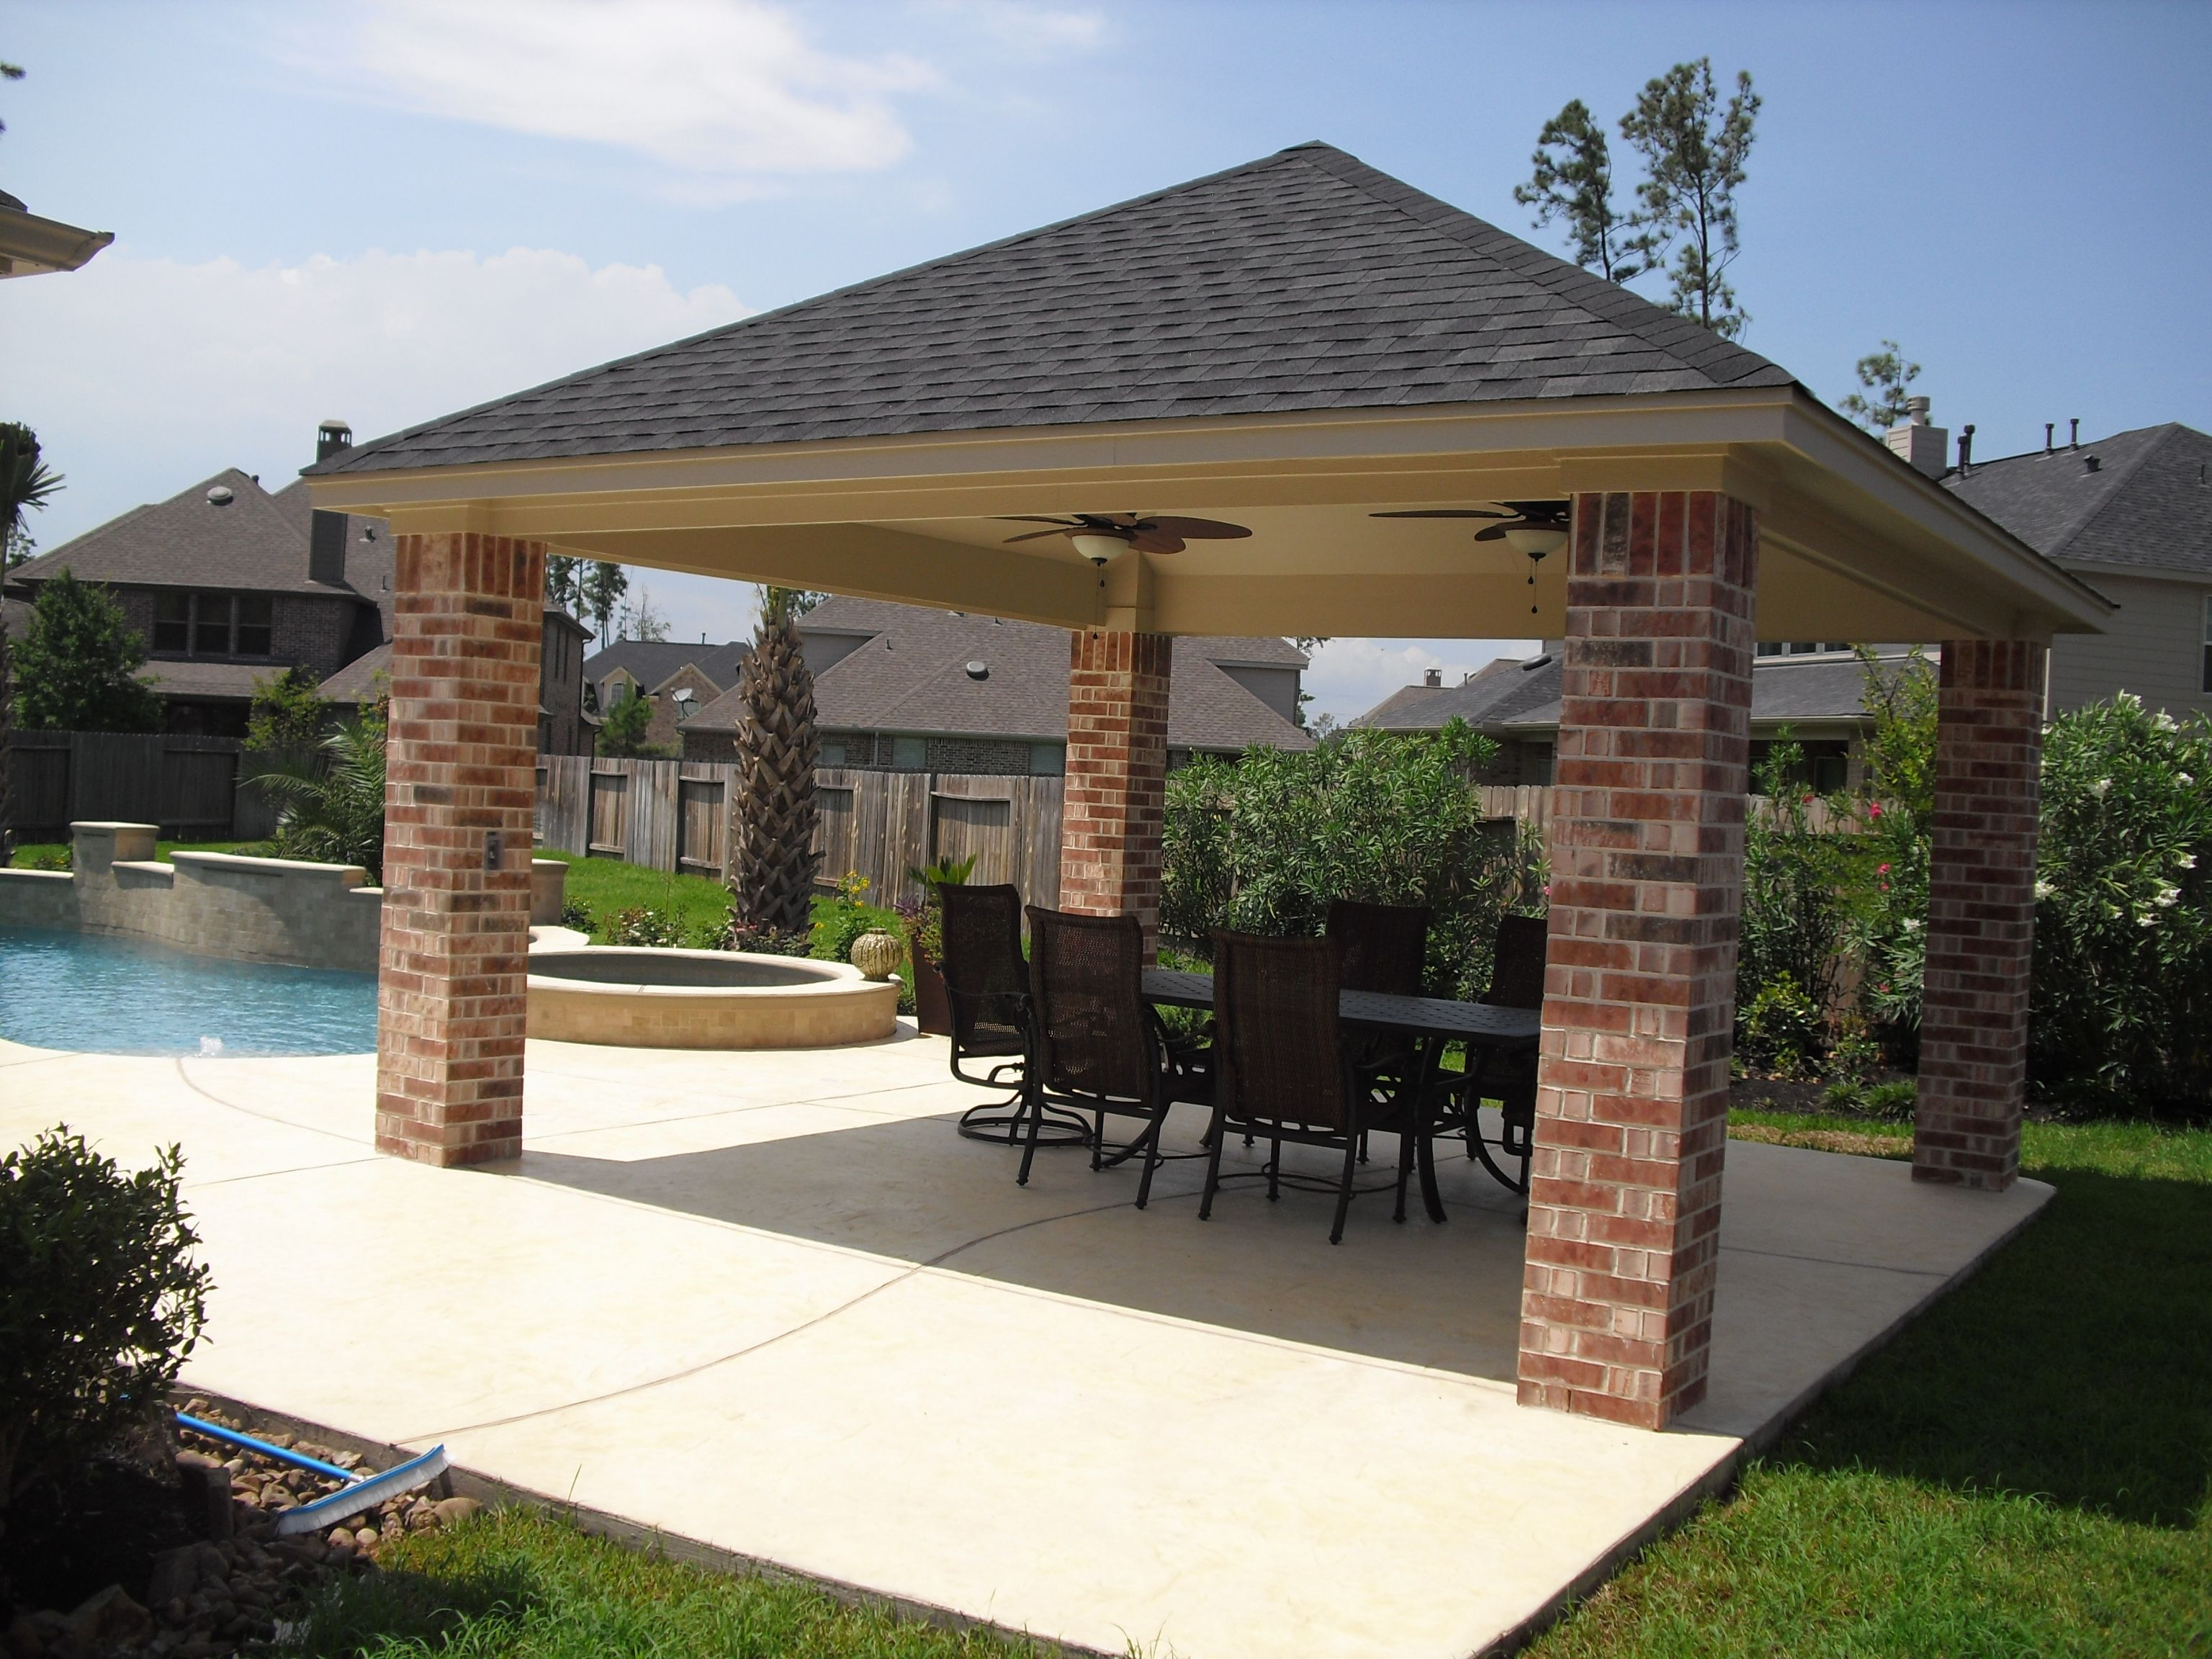 kits fabulous san full roofoveredovers patio of attached edmontonapatio tx awful pergola picture roof design fiberglass covers size ideas antonio